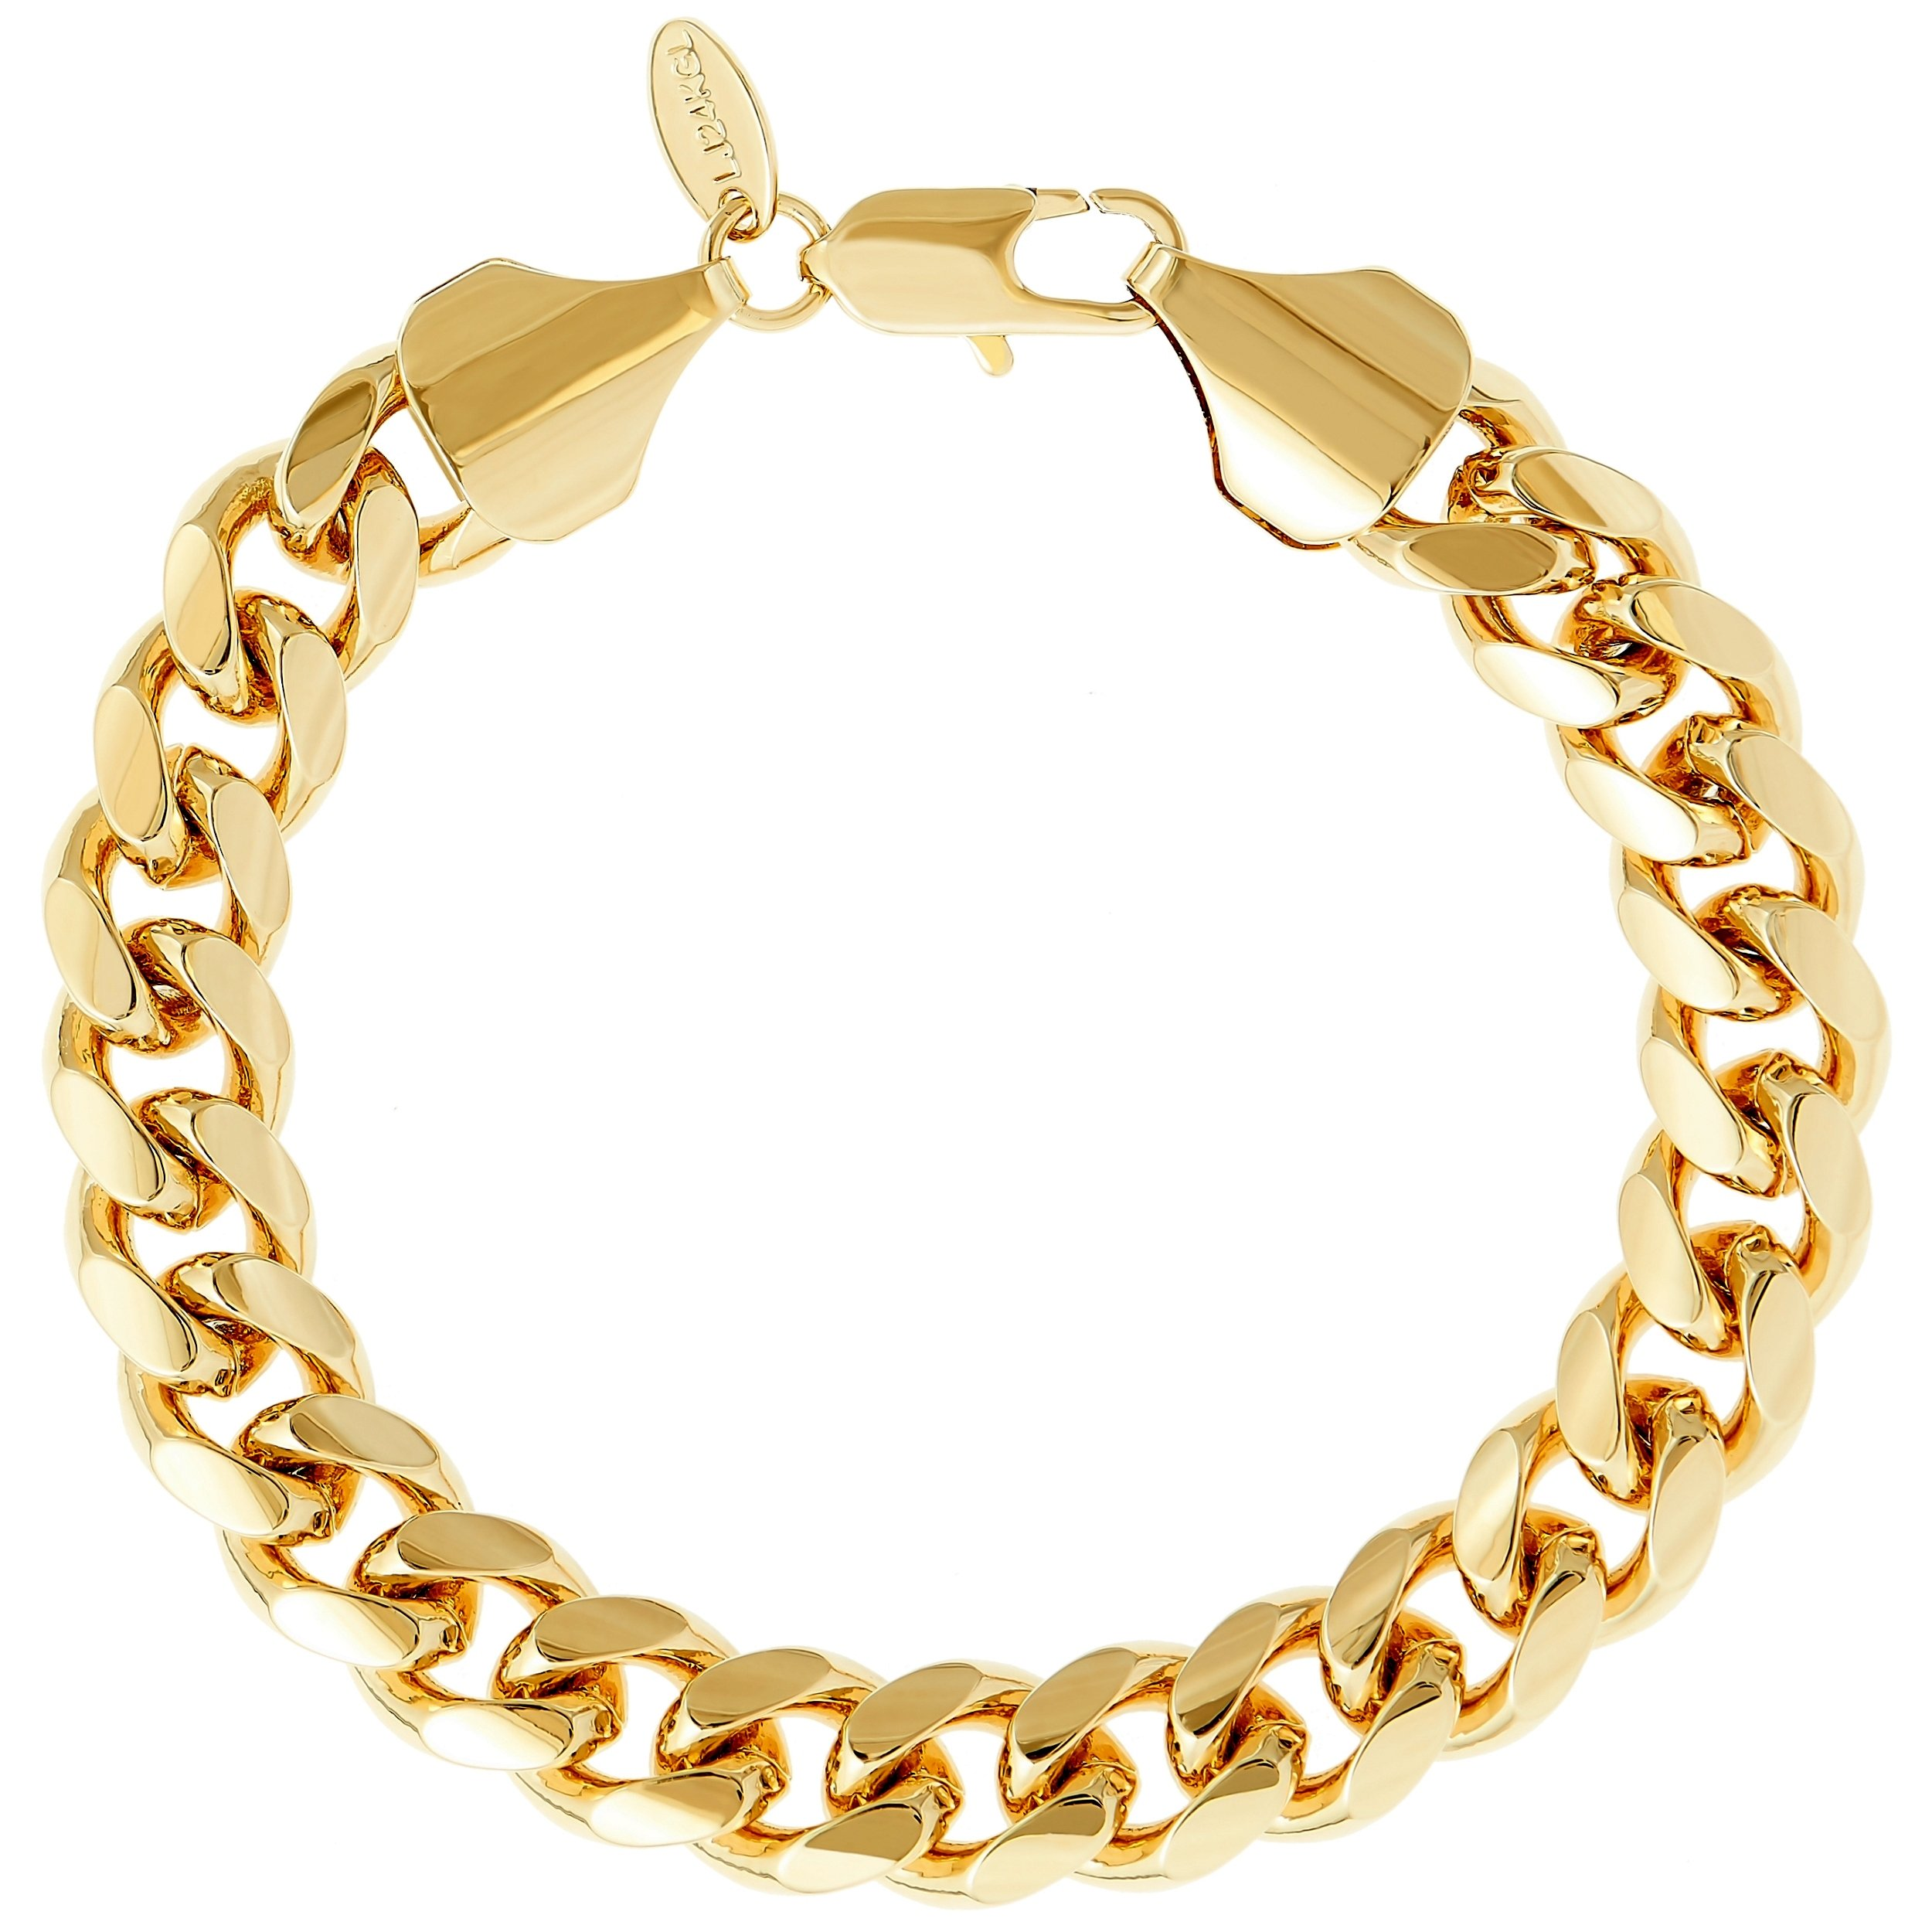 Lifetime Jewelry Cuban Link Bracelet 11MM, Round, 24K Gold Overlay Premium Fashion Jewelry, Guaranteed Life, 8 inches by Lifetime Jewelry (Image #6)